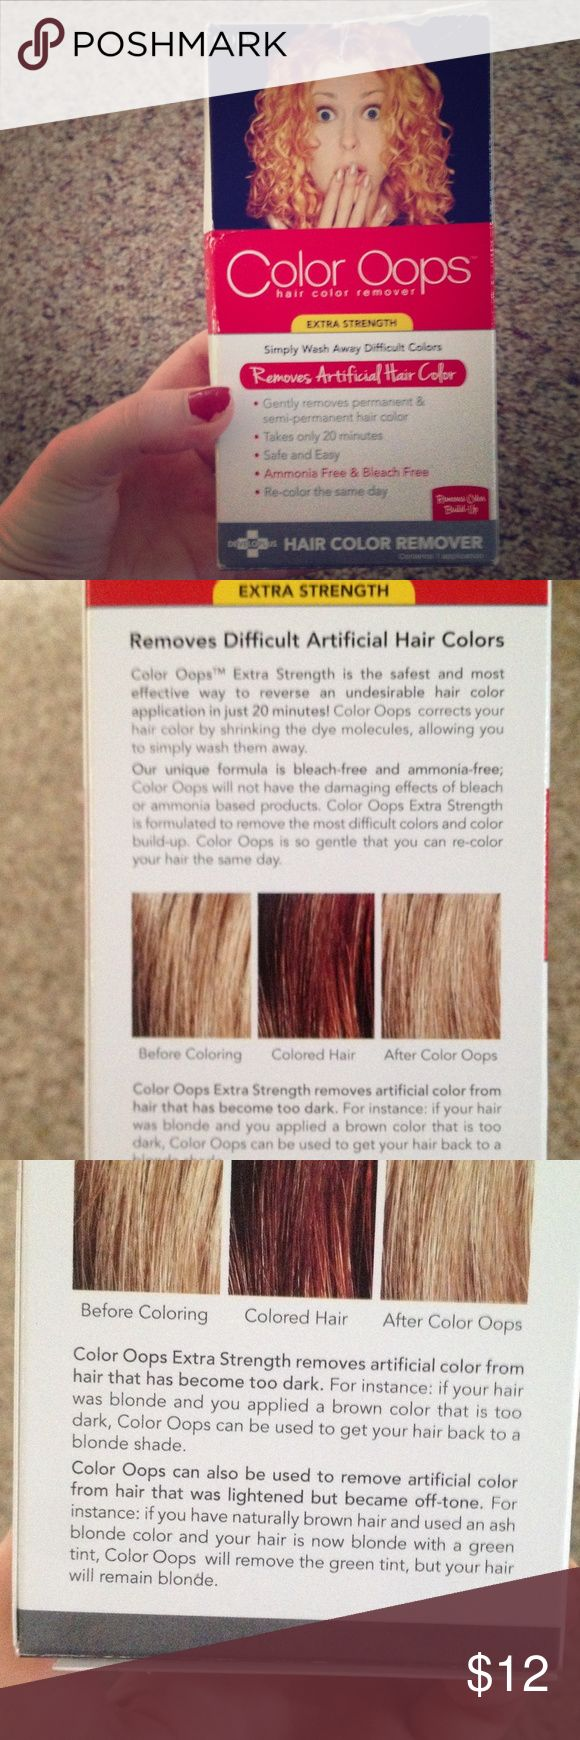 COLOR OOPS Extra strength hair color remover, takes out all artificial hair color an dyes naturally without ammonia or bleach so there is no harm to your hair. Takes only 20 minutes. Also removes color buildup. Never been used or opened. Bought from Sally's Beauty Supply and never used it. #hairdye #haircolor #haircolorremover #naturaldyes #hair #color #amoniafree #bleachfree #coloroops #nwt #new #brandnew #neverused color oops Other